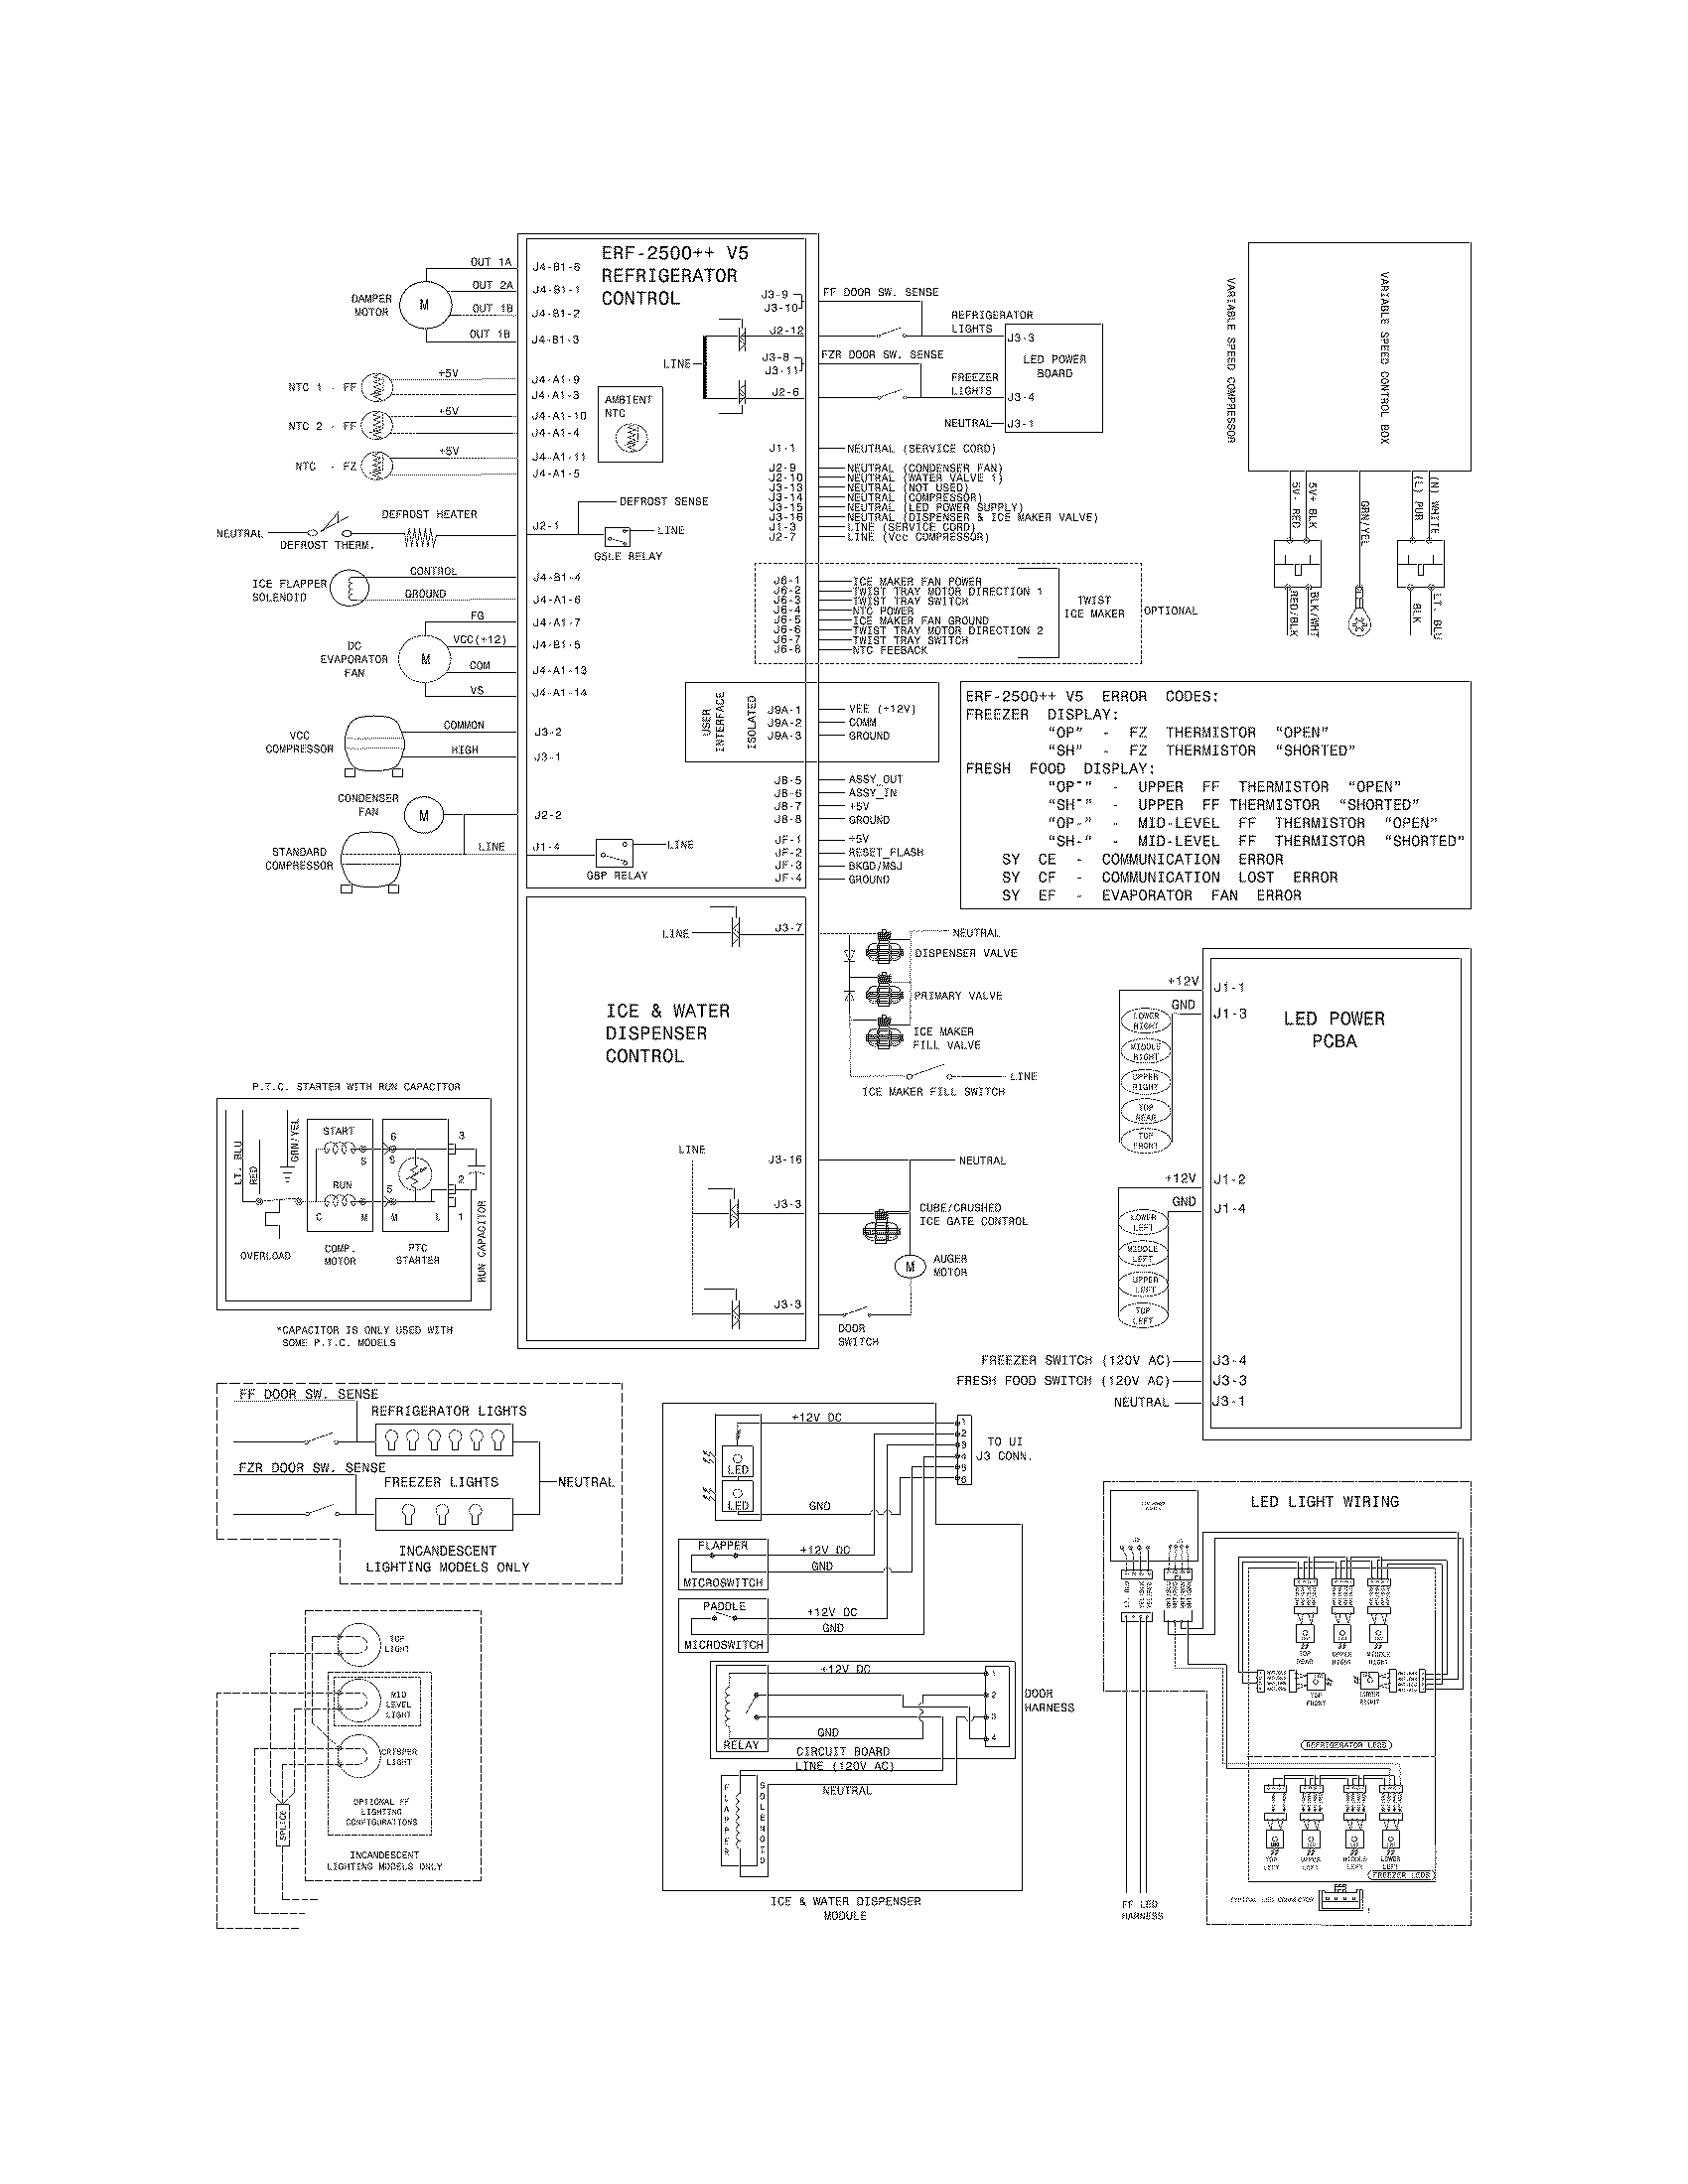 manual troubleshooting wiring diagram